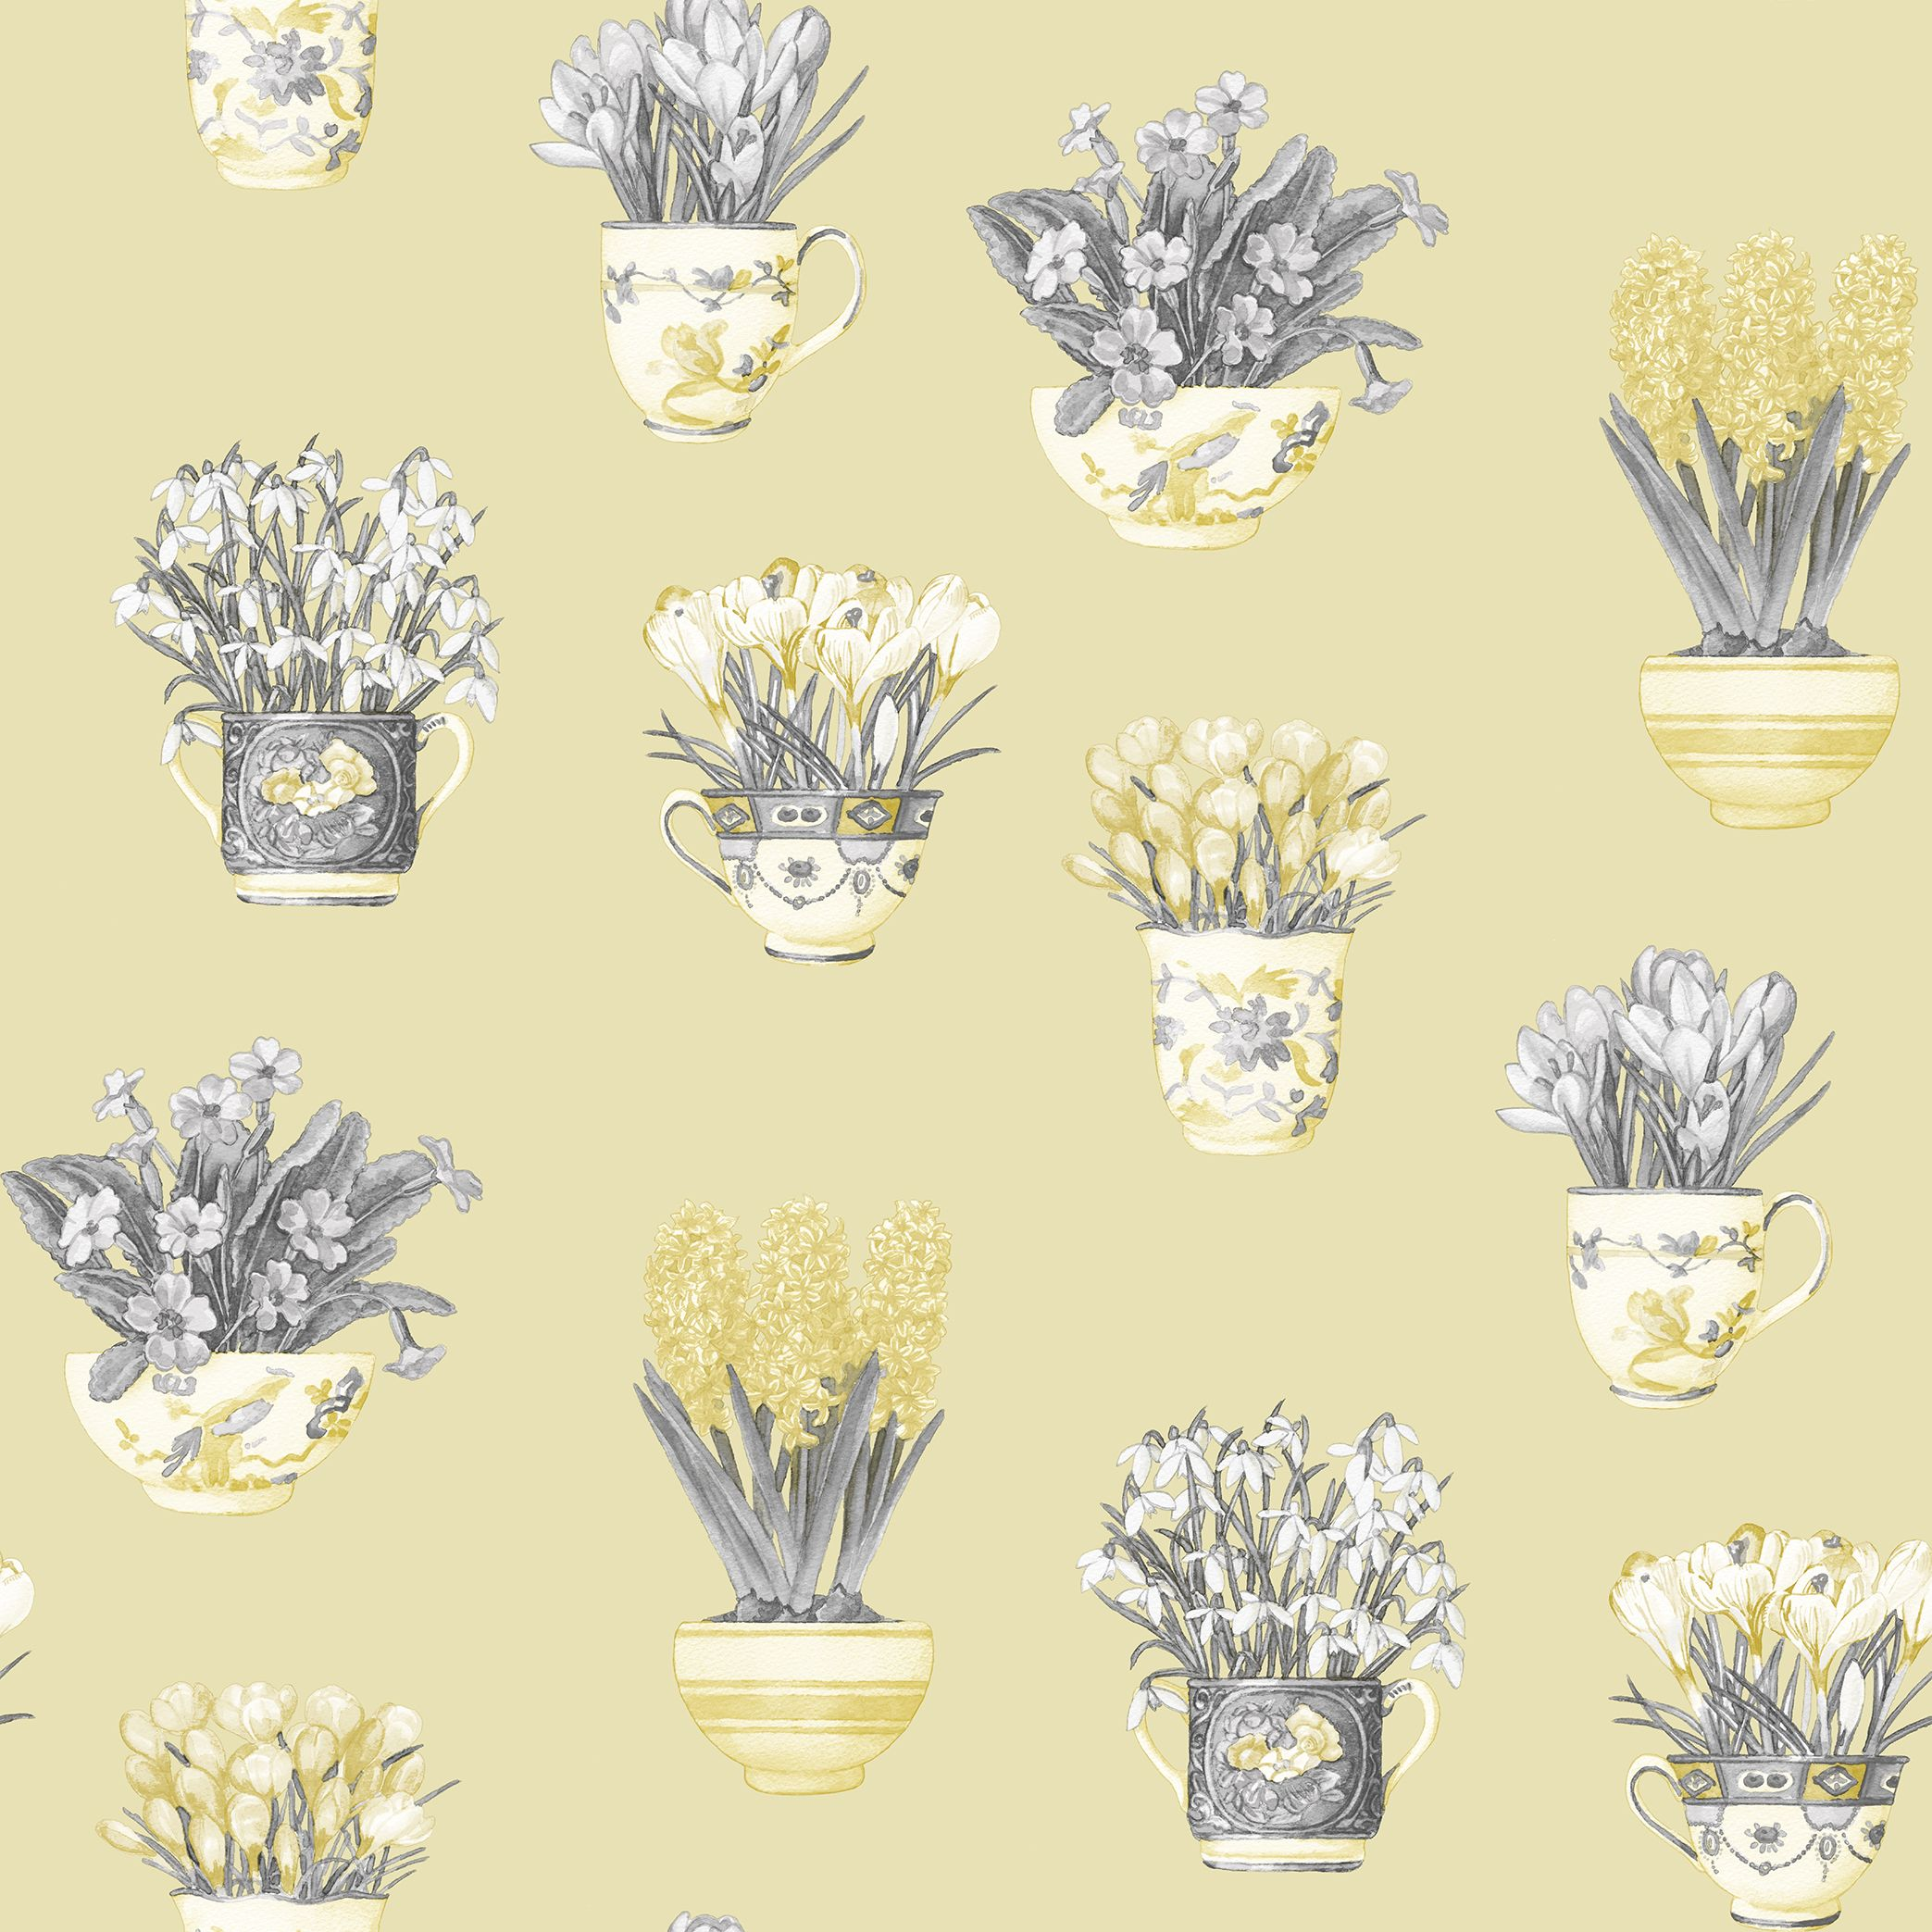 Potted Plants by Galerie Yellow Wallpaper FK34420